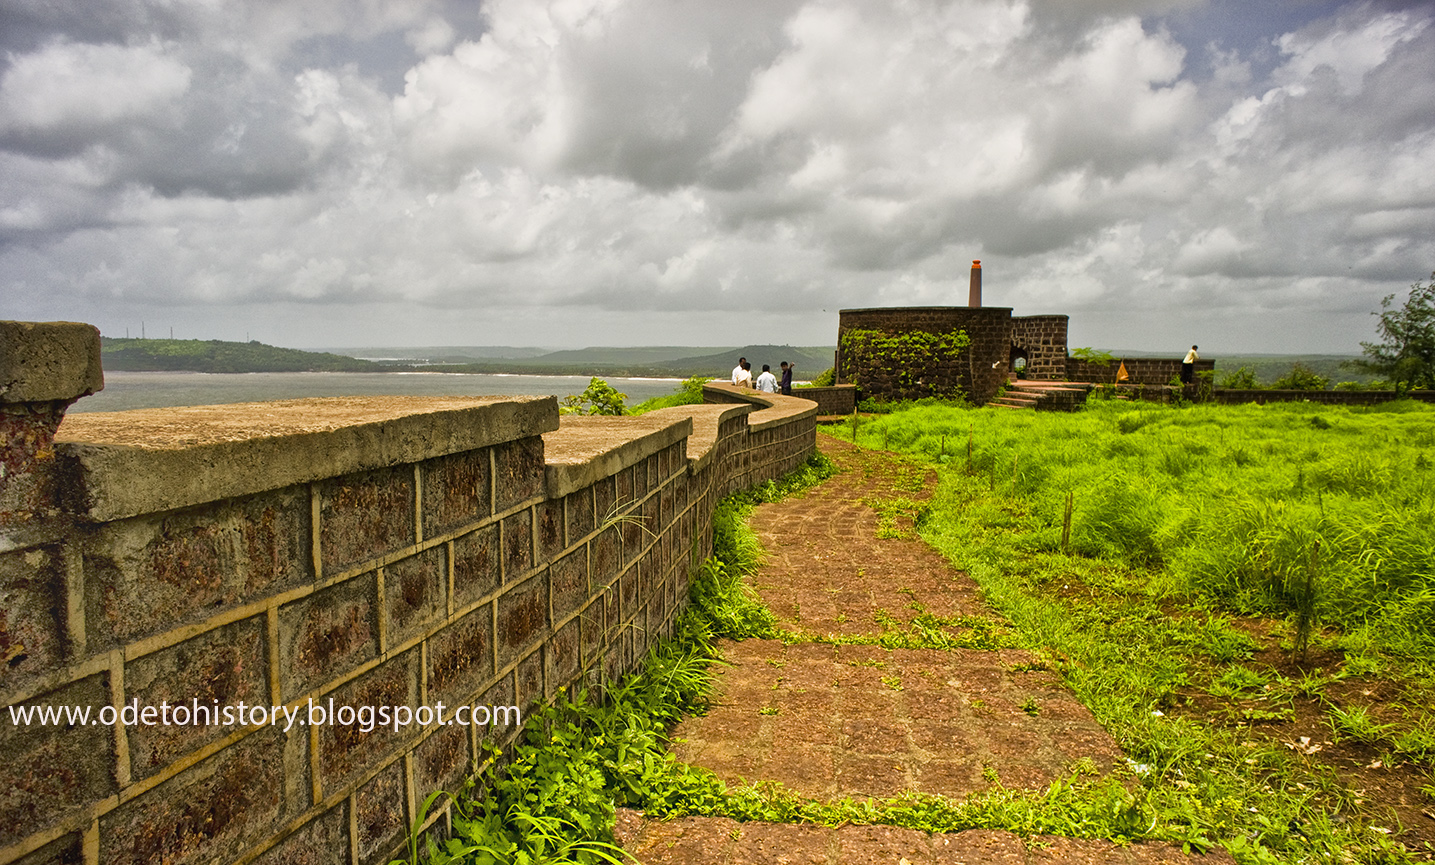 An ode to history a photo montage vijaydurg fort - Ratnagiri Is Known As God S Land In The Epics There S A Legend That The Parshuram After Donating The Entire Earth Had No Place To Reside